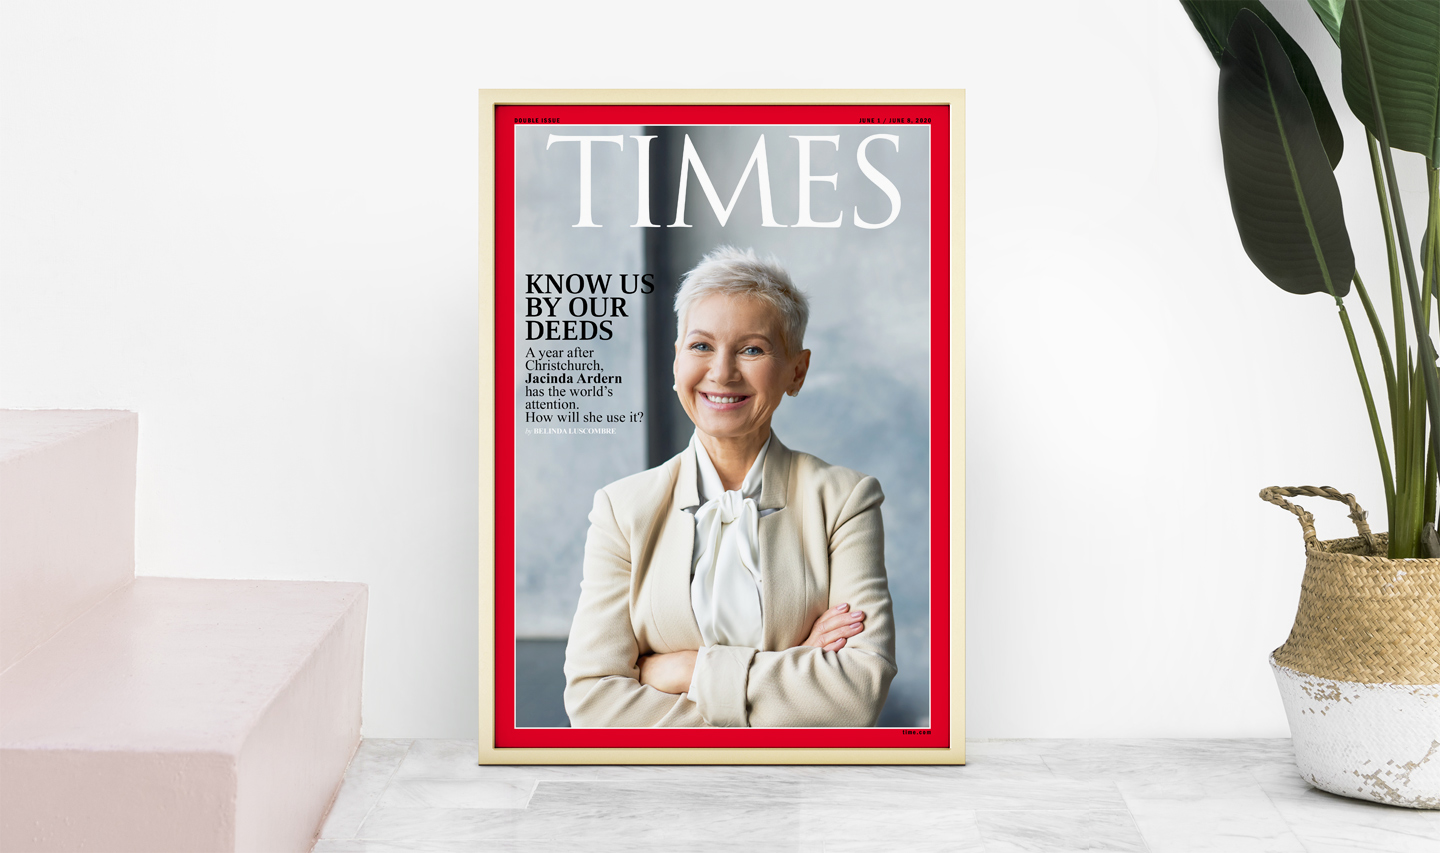 Your Cover Gift is a magazine cover that is a new 2020 line of bespoke gifts for everyone